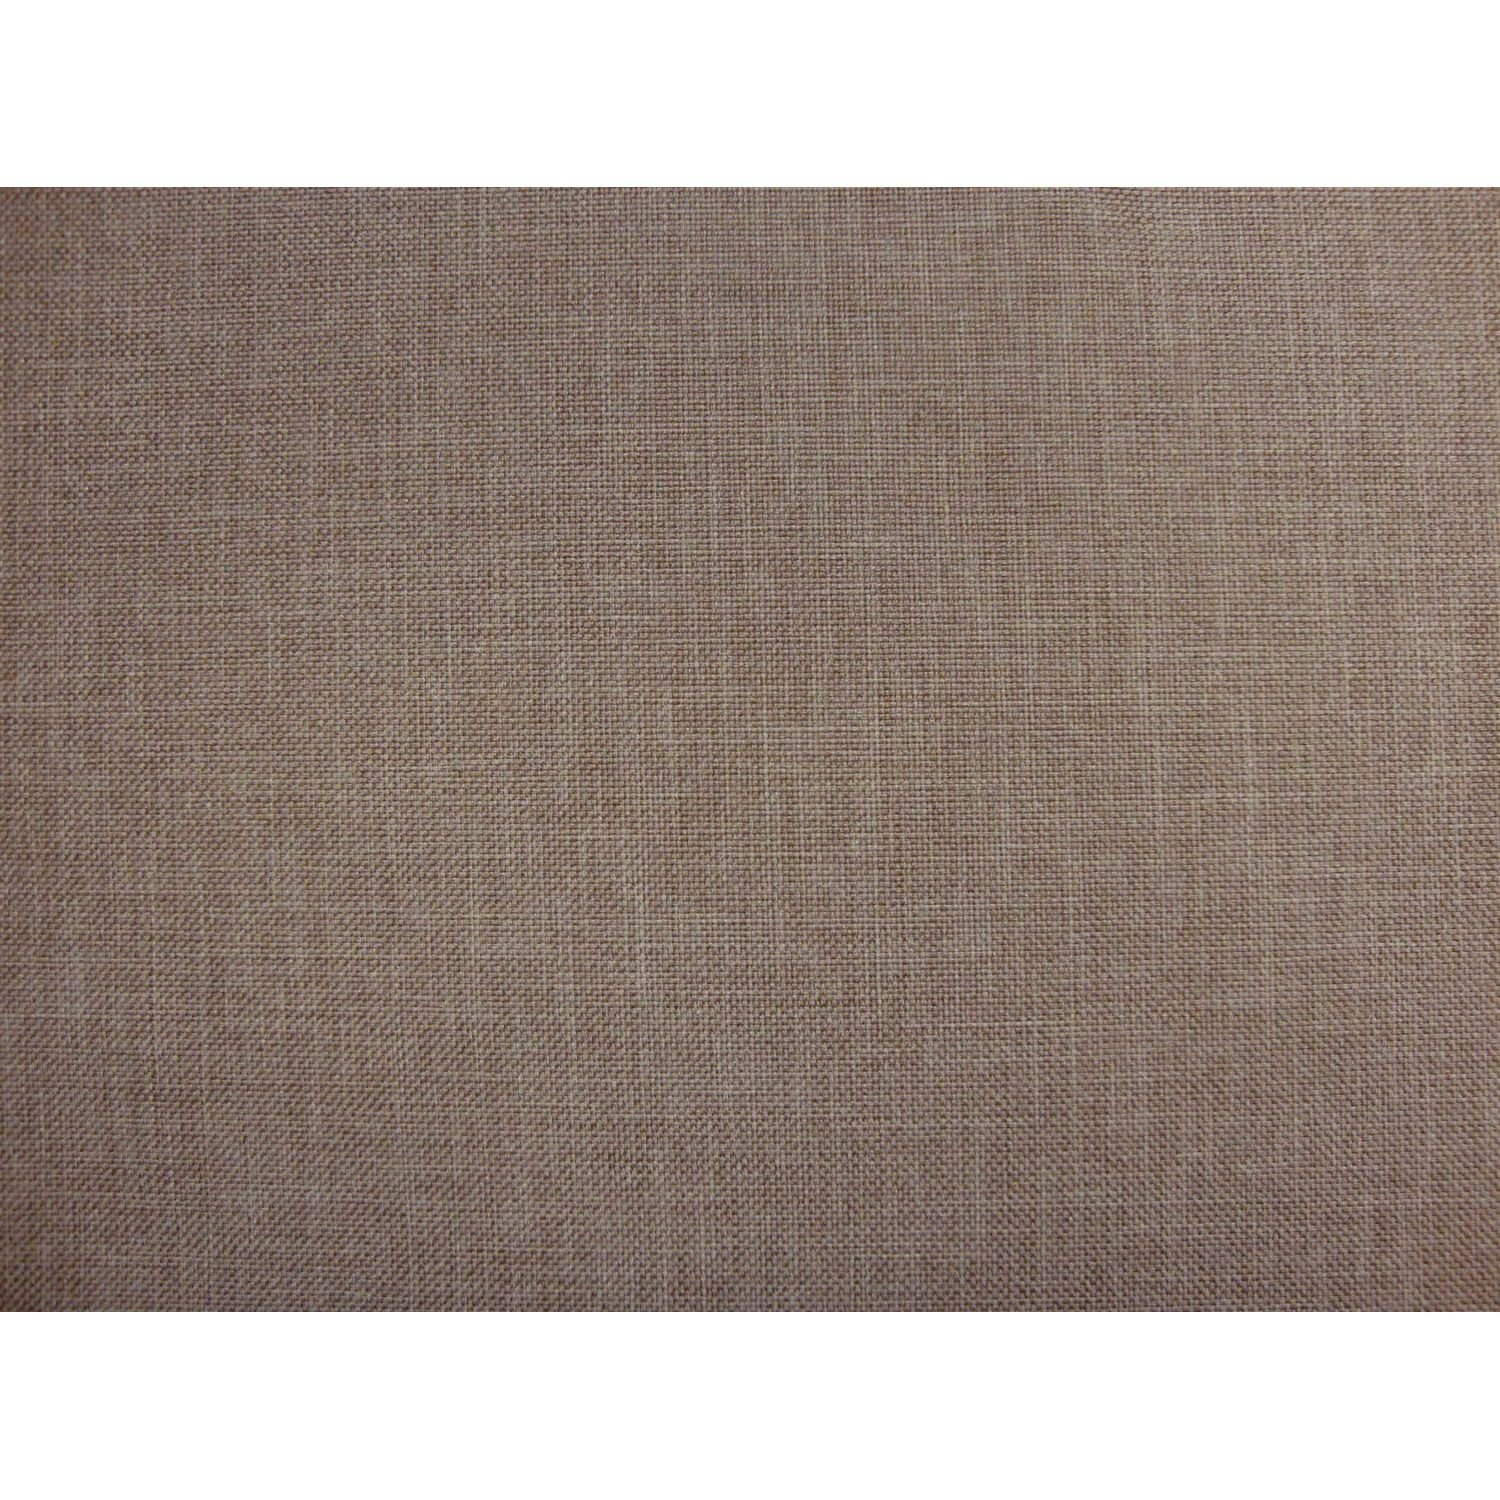 Umax Linen Texture Khaki Futon Cover Full Size, Proudly Made in USA by DCG Stores